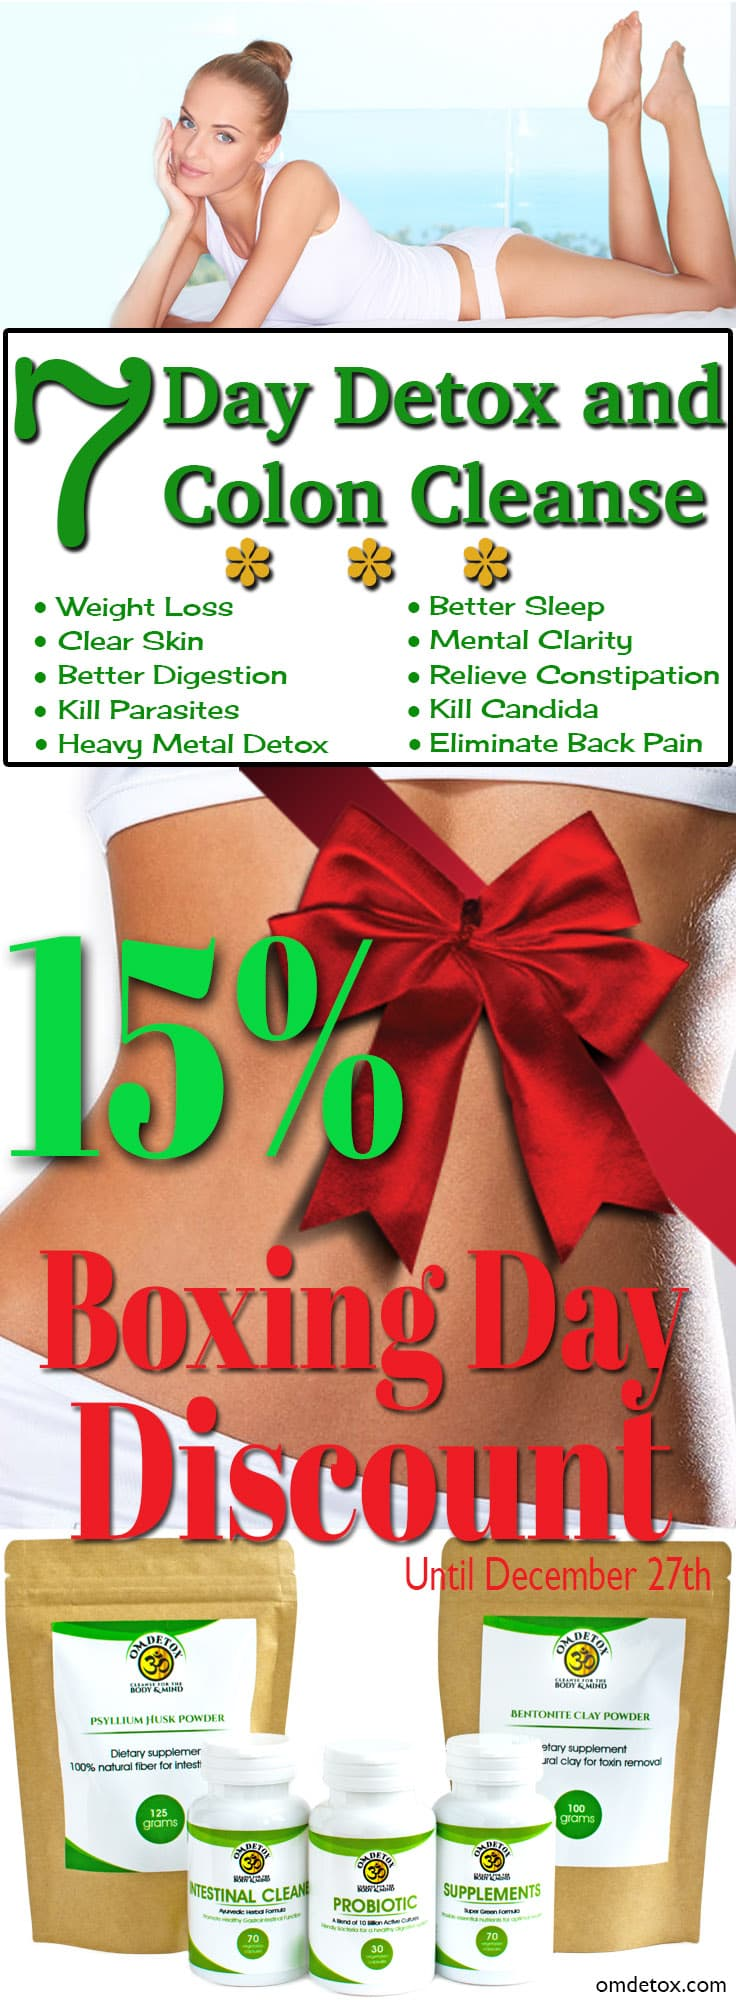 OmDetox 7 Day detox and Colon Cleanse Boxing Day Special